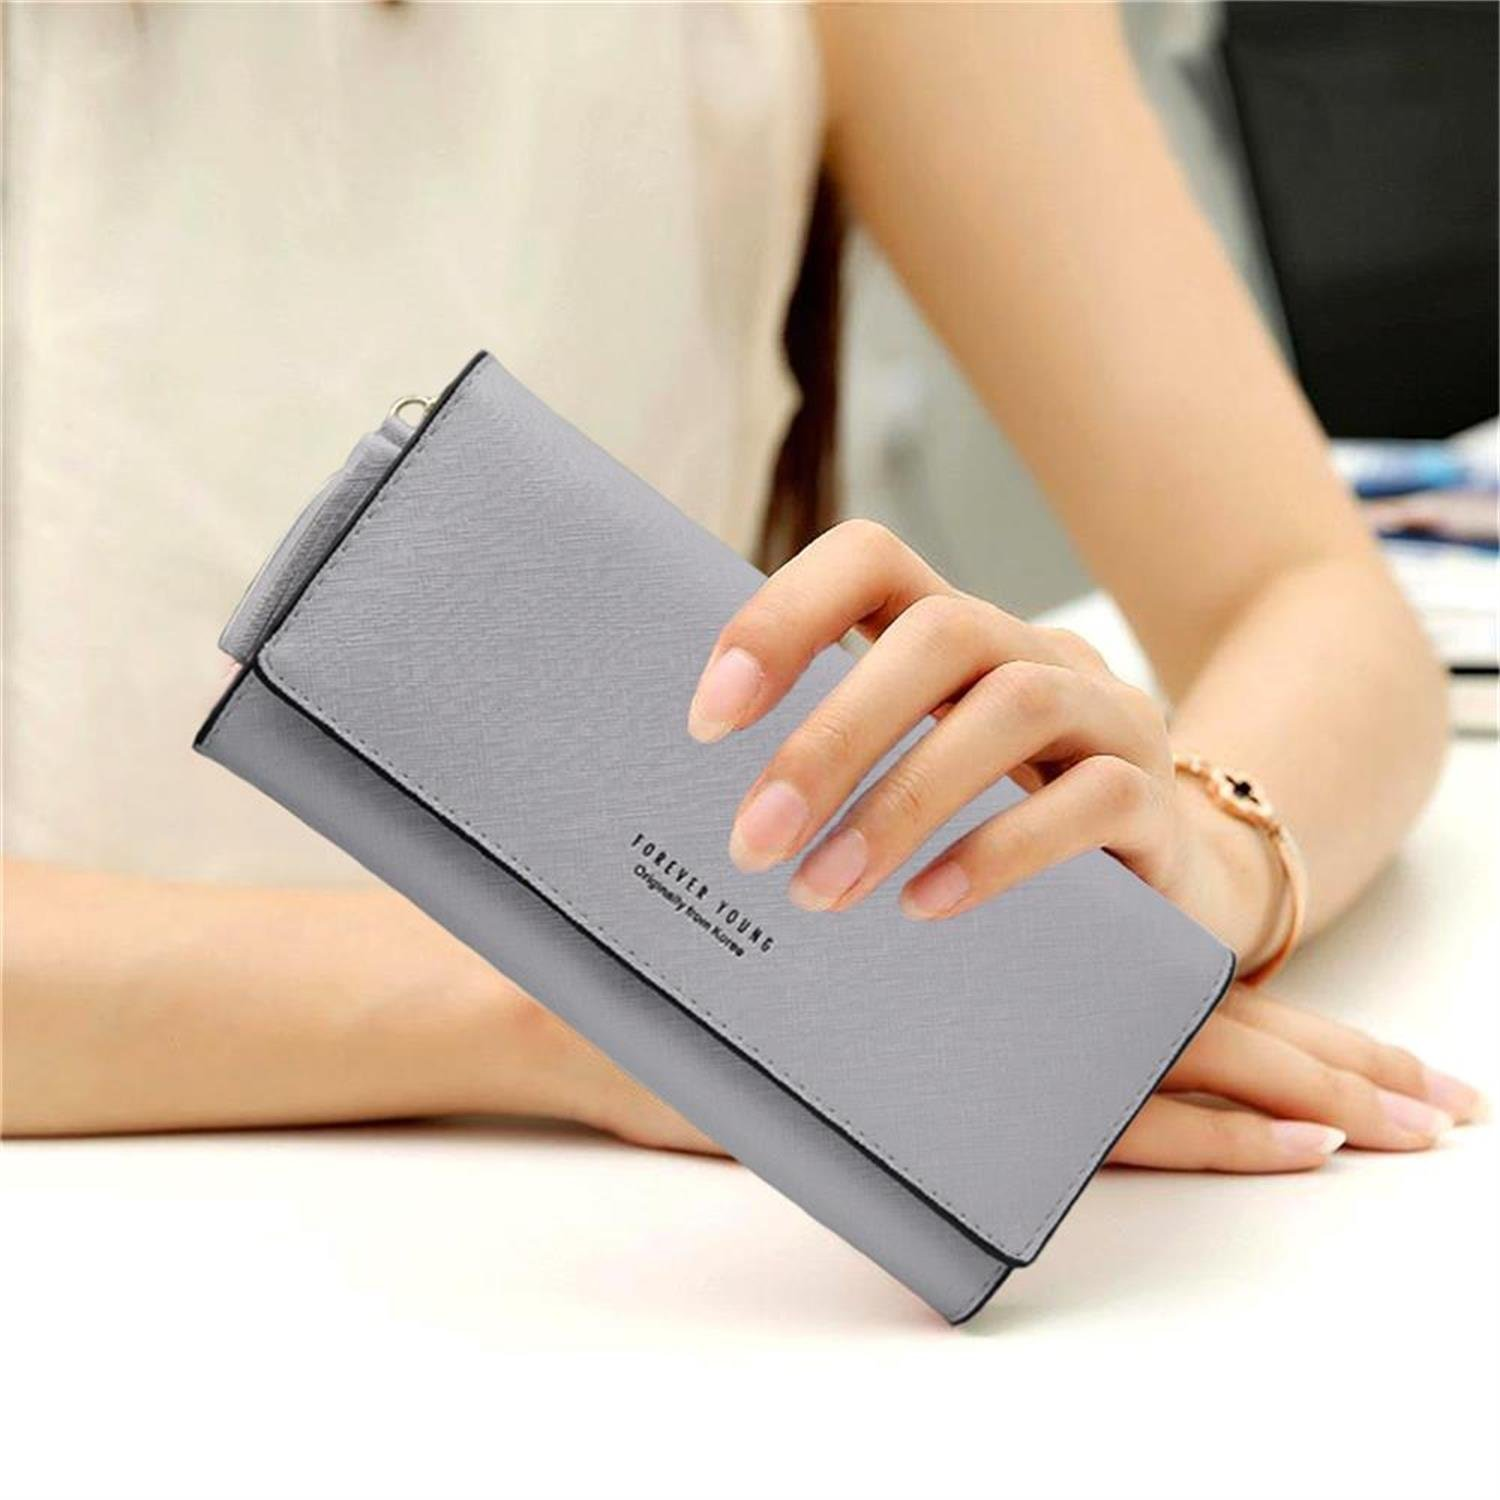 Wallets for Women, Slim Clutch Long Leather Purse Lady Checkbook Credit Card Holder with a Removable Card Slot (A-Gray) by Aiyo Fashion (Image #7)